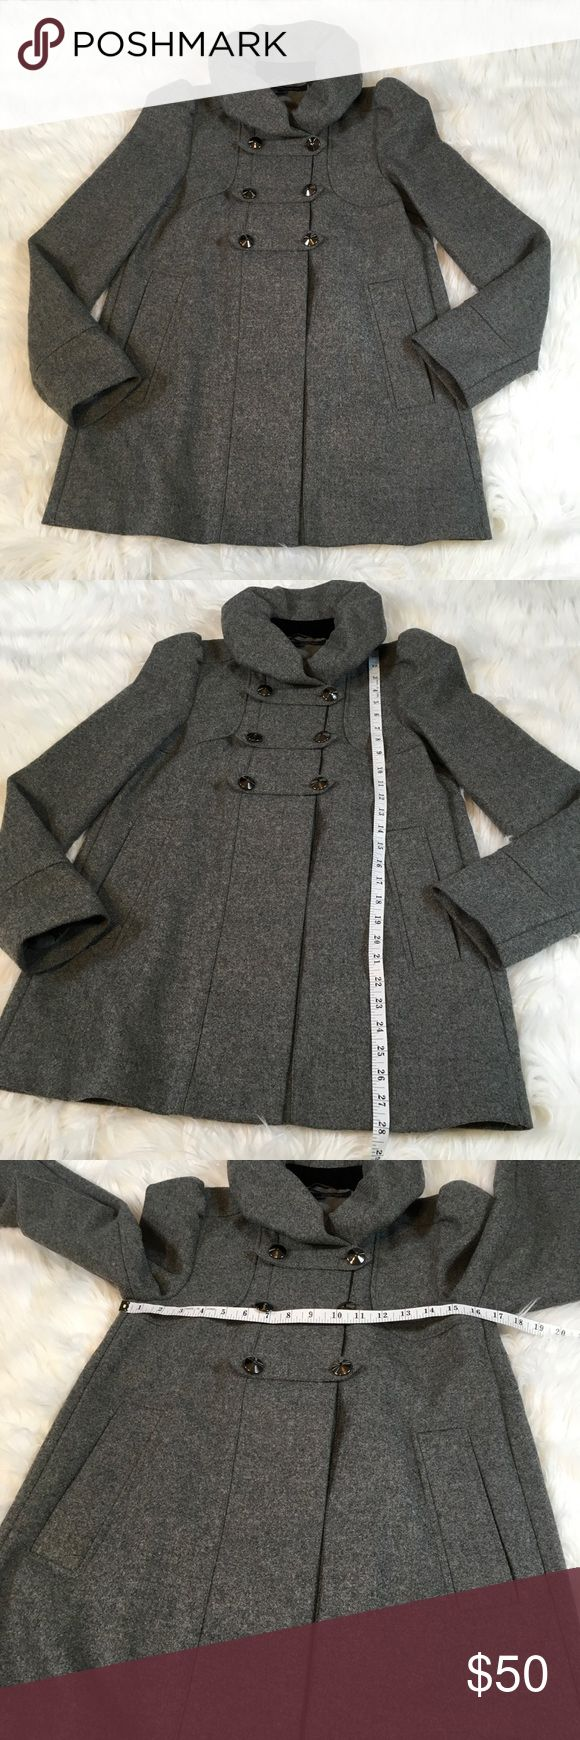 French Connection Women's 100% Virgin Wool Coat French Connection Women's Virgin Wool Coat Size 2 Gray.  Gently used condition with no flaws.  100% Virgin Wool.  Please see pictures for measurements.  Smoke free home. French Connection Jackets & Coats Pea Coats